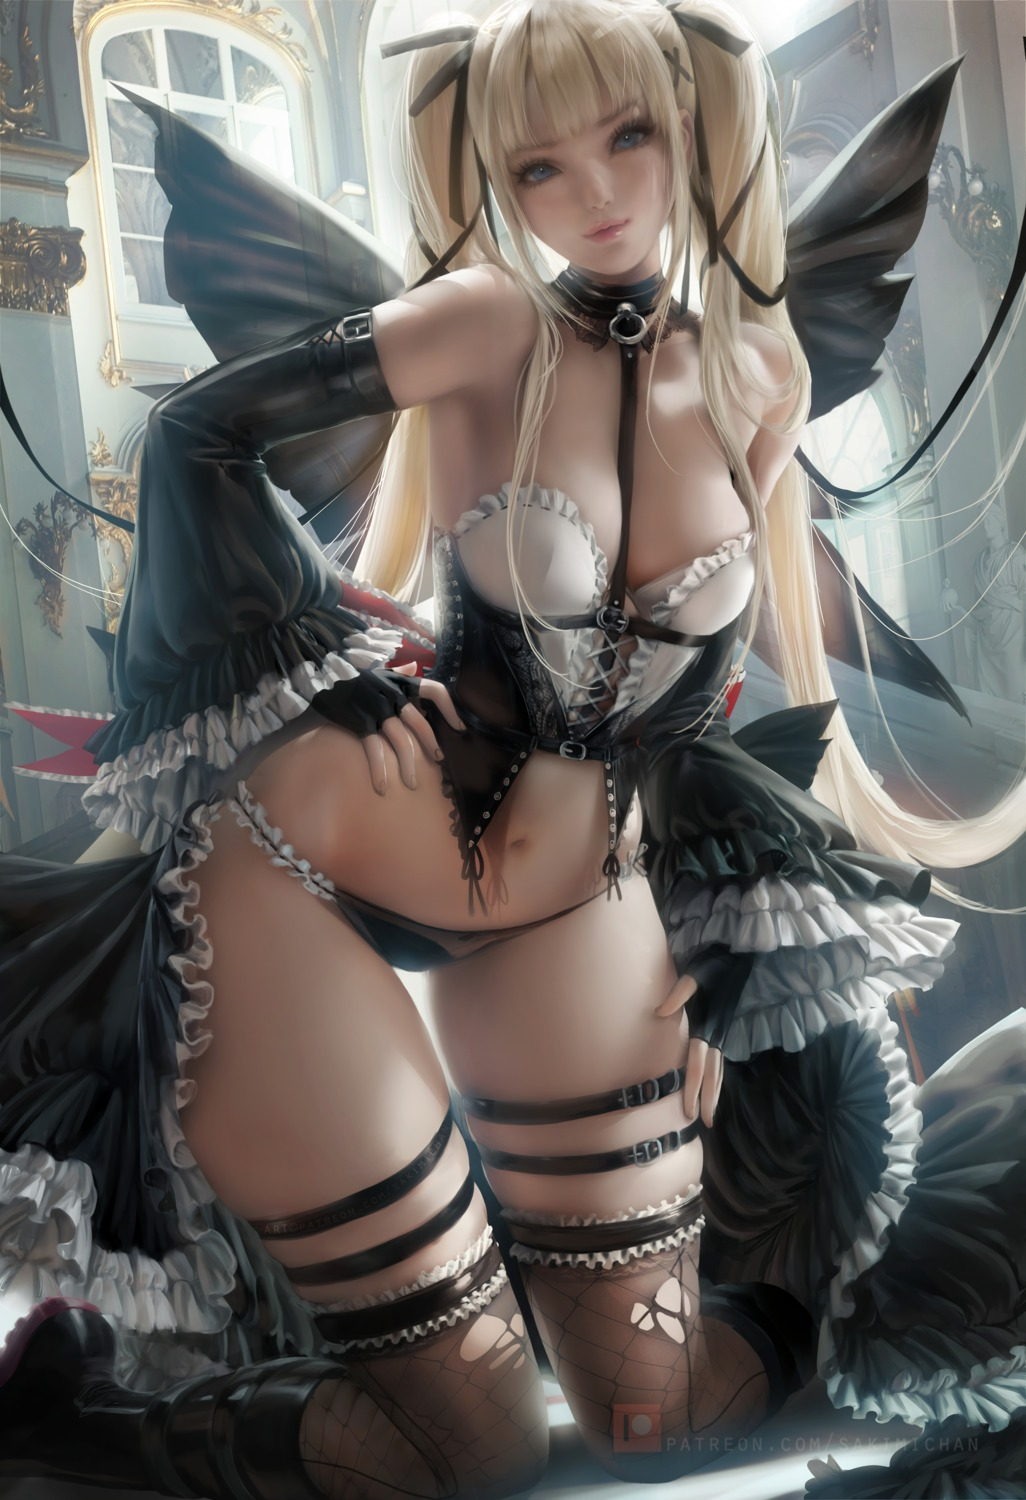 cleavage dead_or_alive_5 garter lingerie marie_rose pantsu sakimichan thighhighs torn_clothes wings